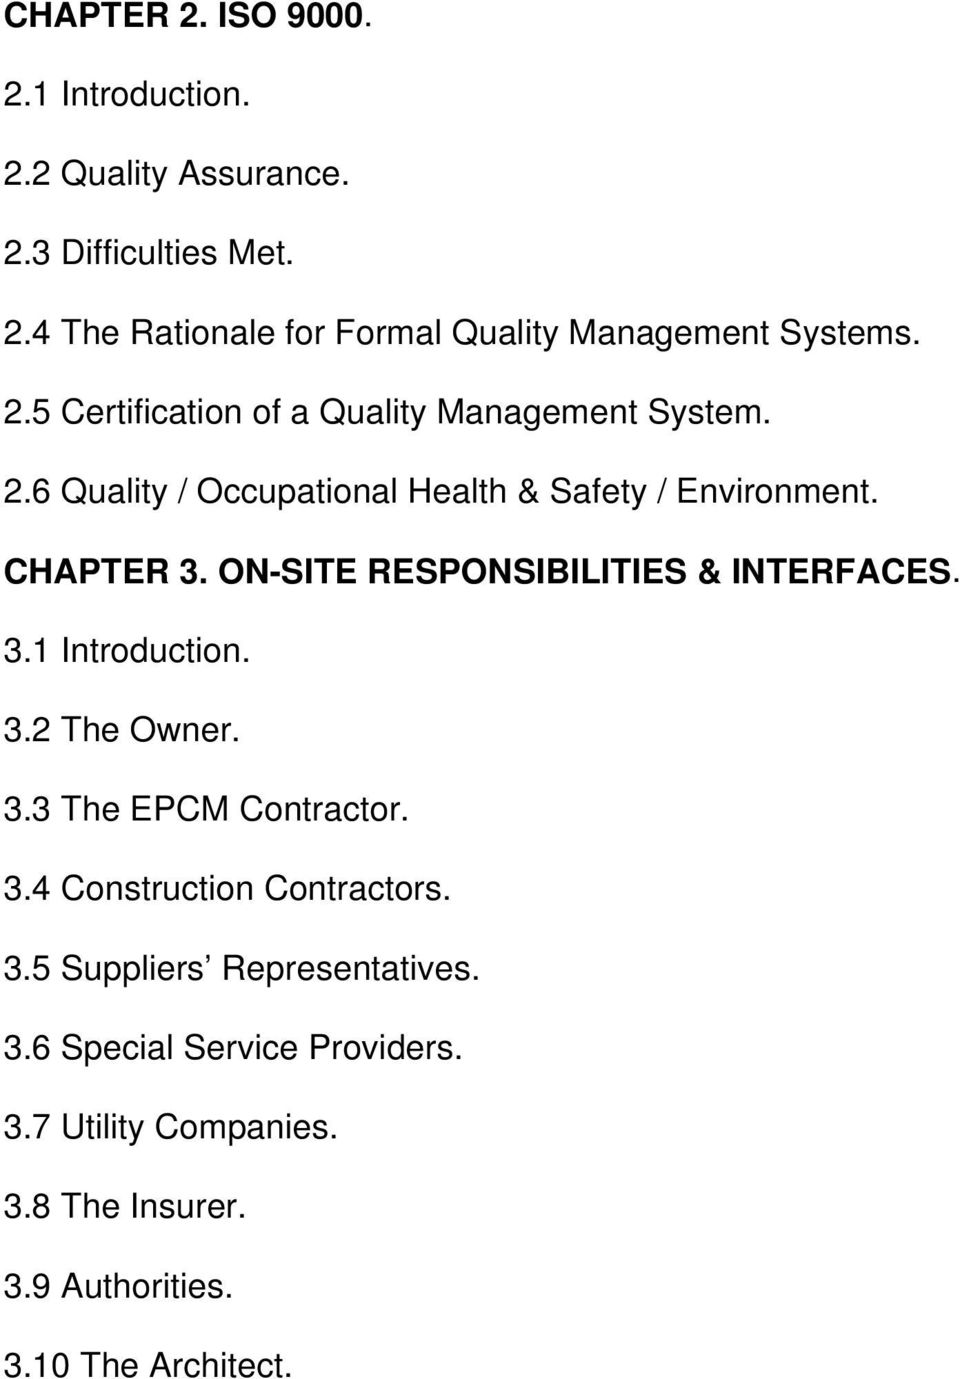 ON-SITE RESPONSIBILITIES & INTERFACES. 3.1 Introduction. 3.2 The Owner. 3.3 The EPCM Contractor. 3.4 Construction Contractors. 3.5 Suppliers Representatives.